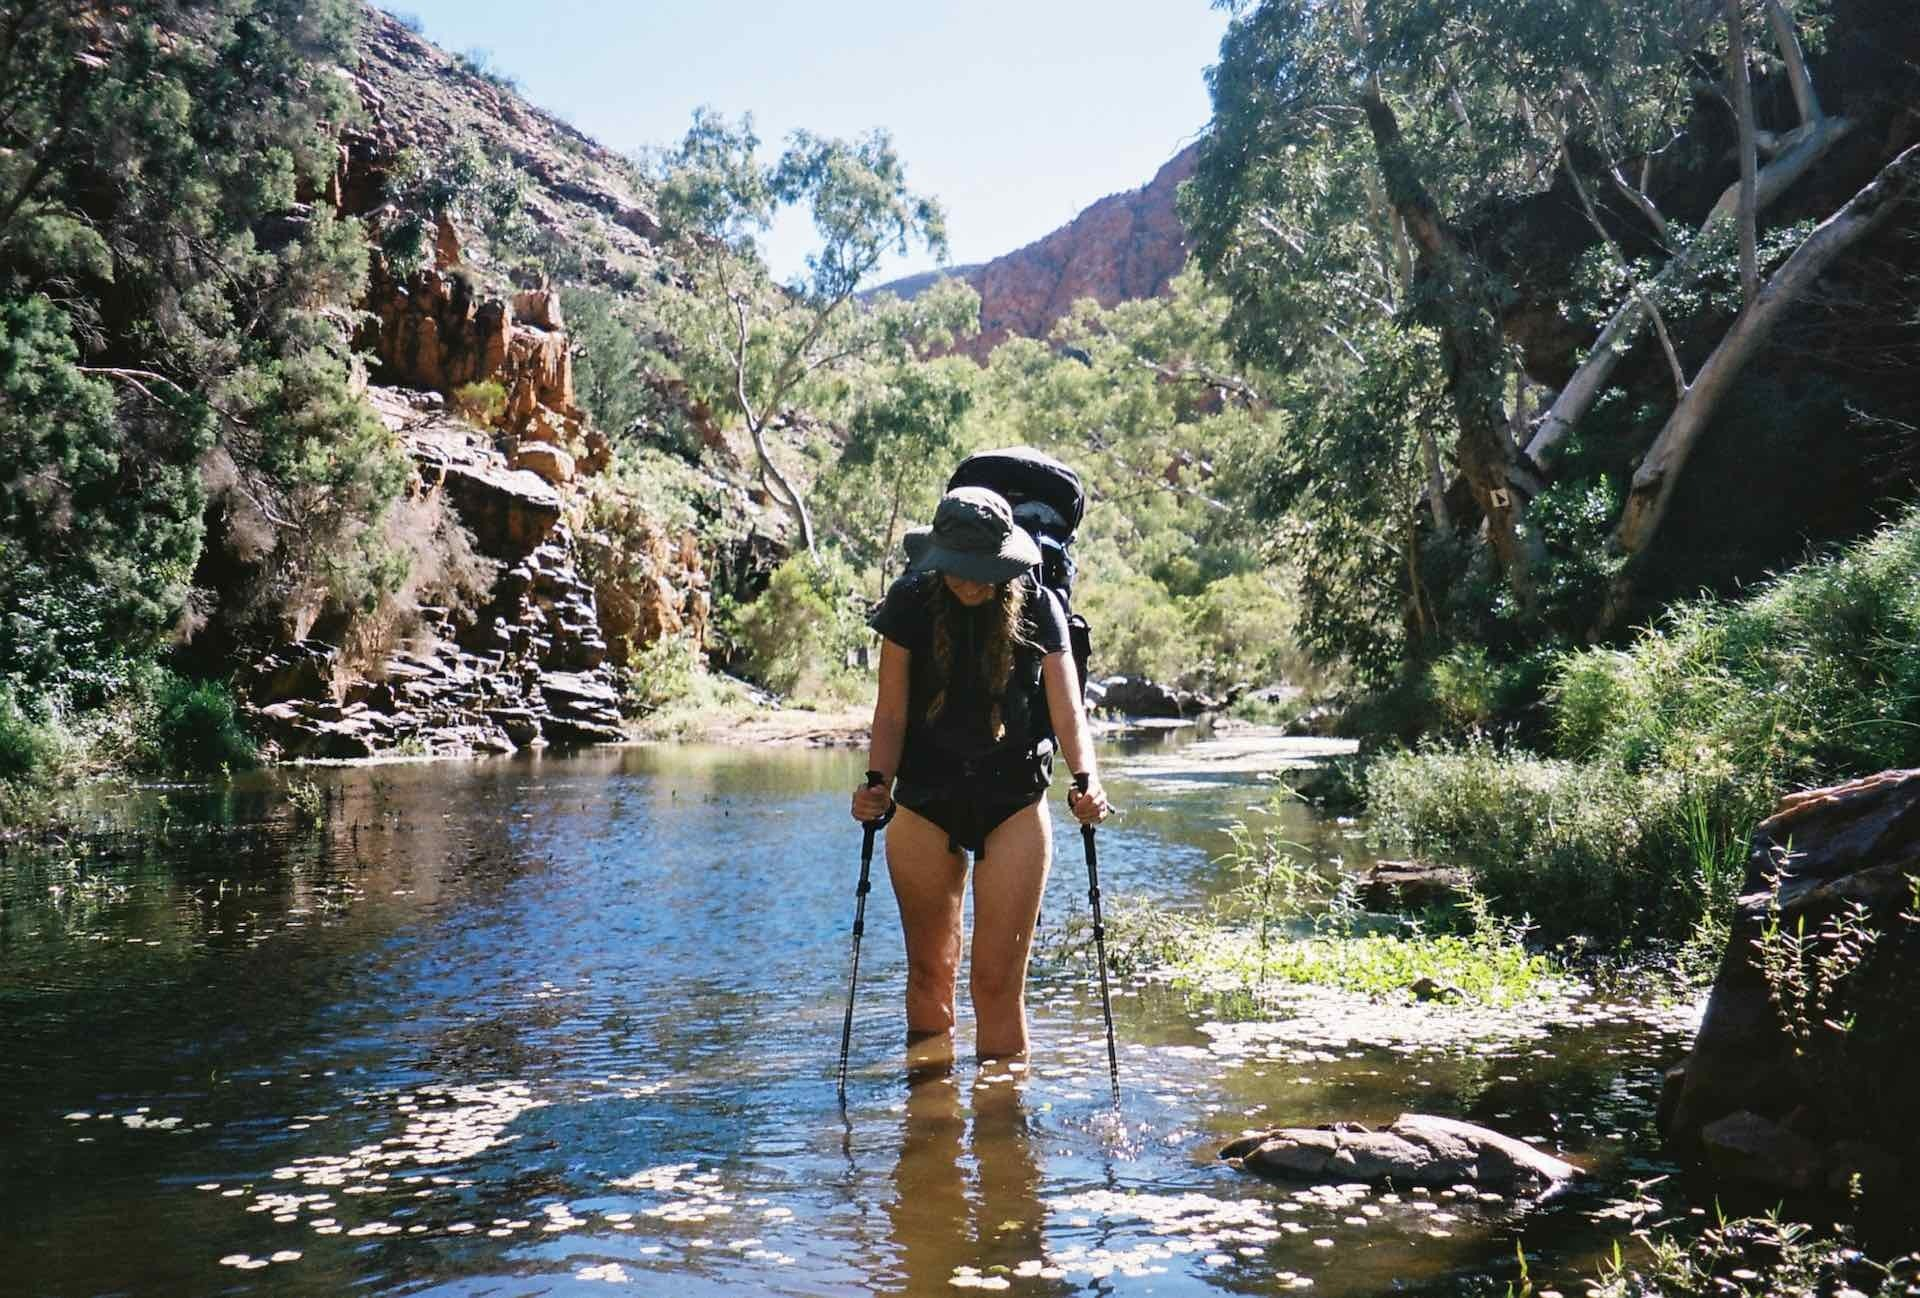 10 Things You Need to Know Before Hiking The Larapinta Trail, Ruby Claire, Central Australia, gorge, river, woman, hike, wade, hiking poles